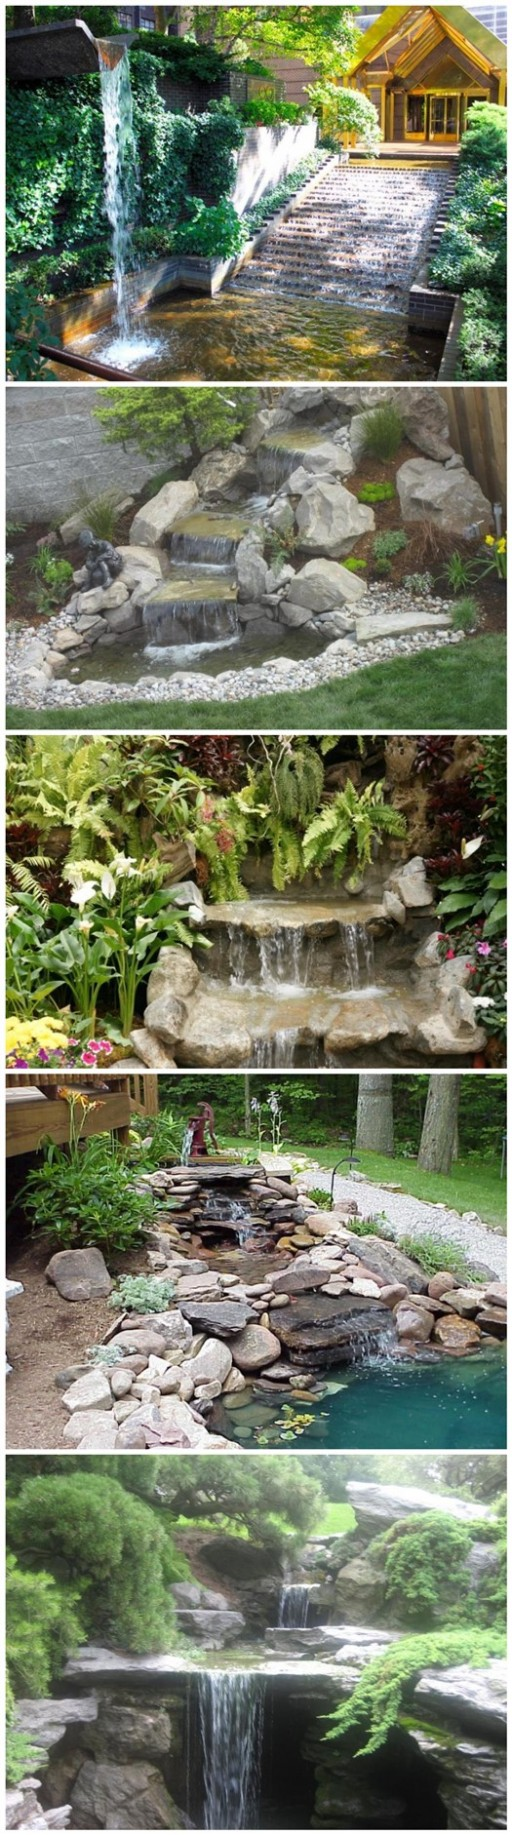 How to build a garden waterfall pond diy tag for Garden pond building instructions